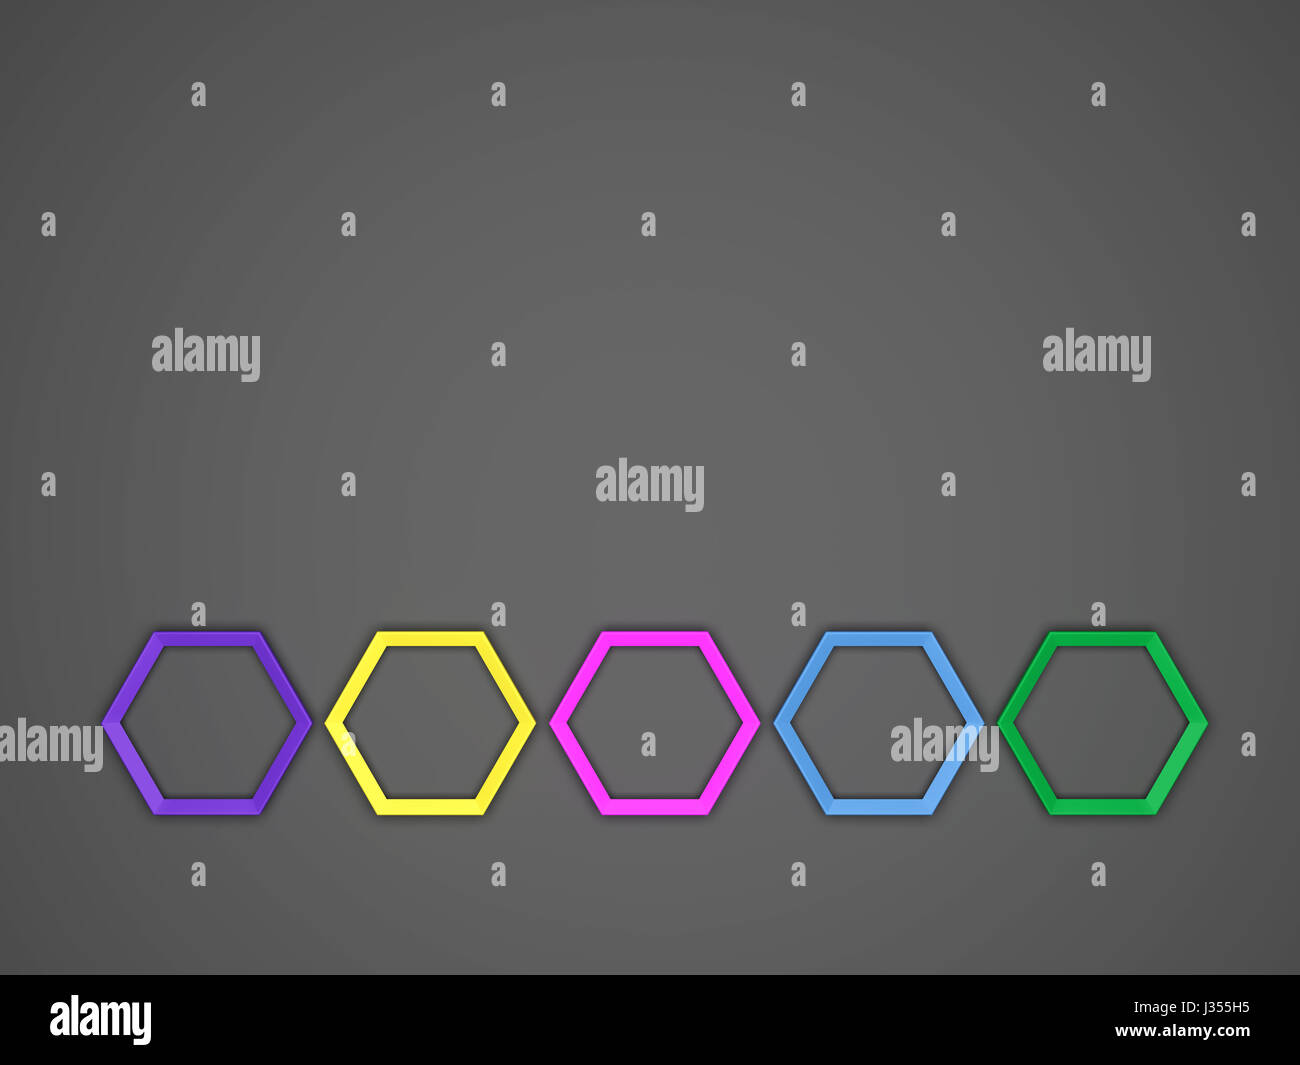 3d octagon template layout for business stock photo 139641073 alamy